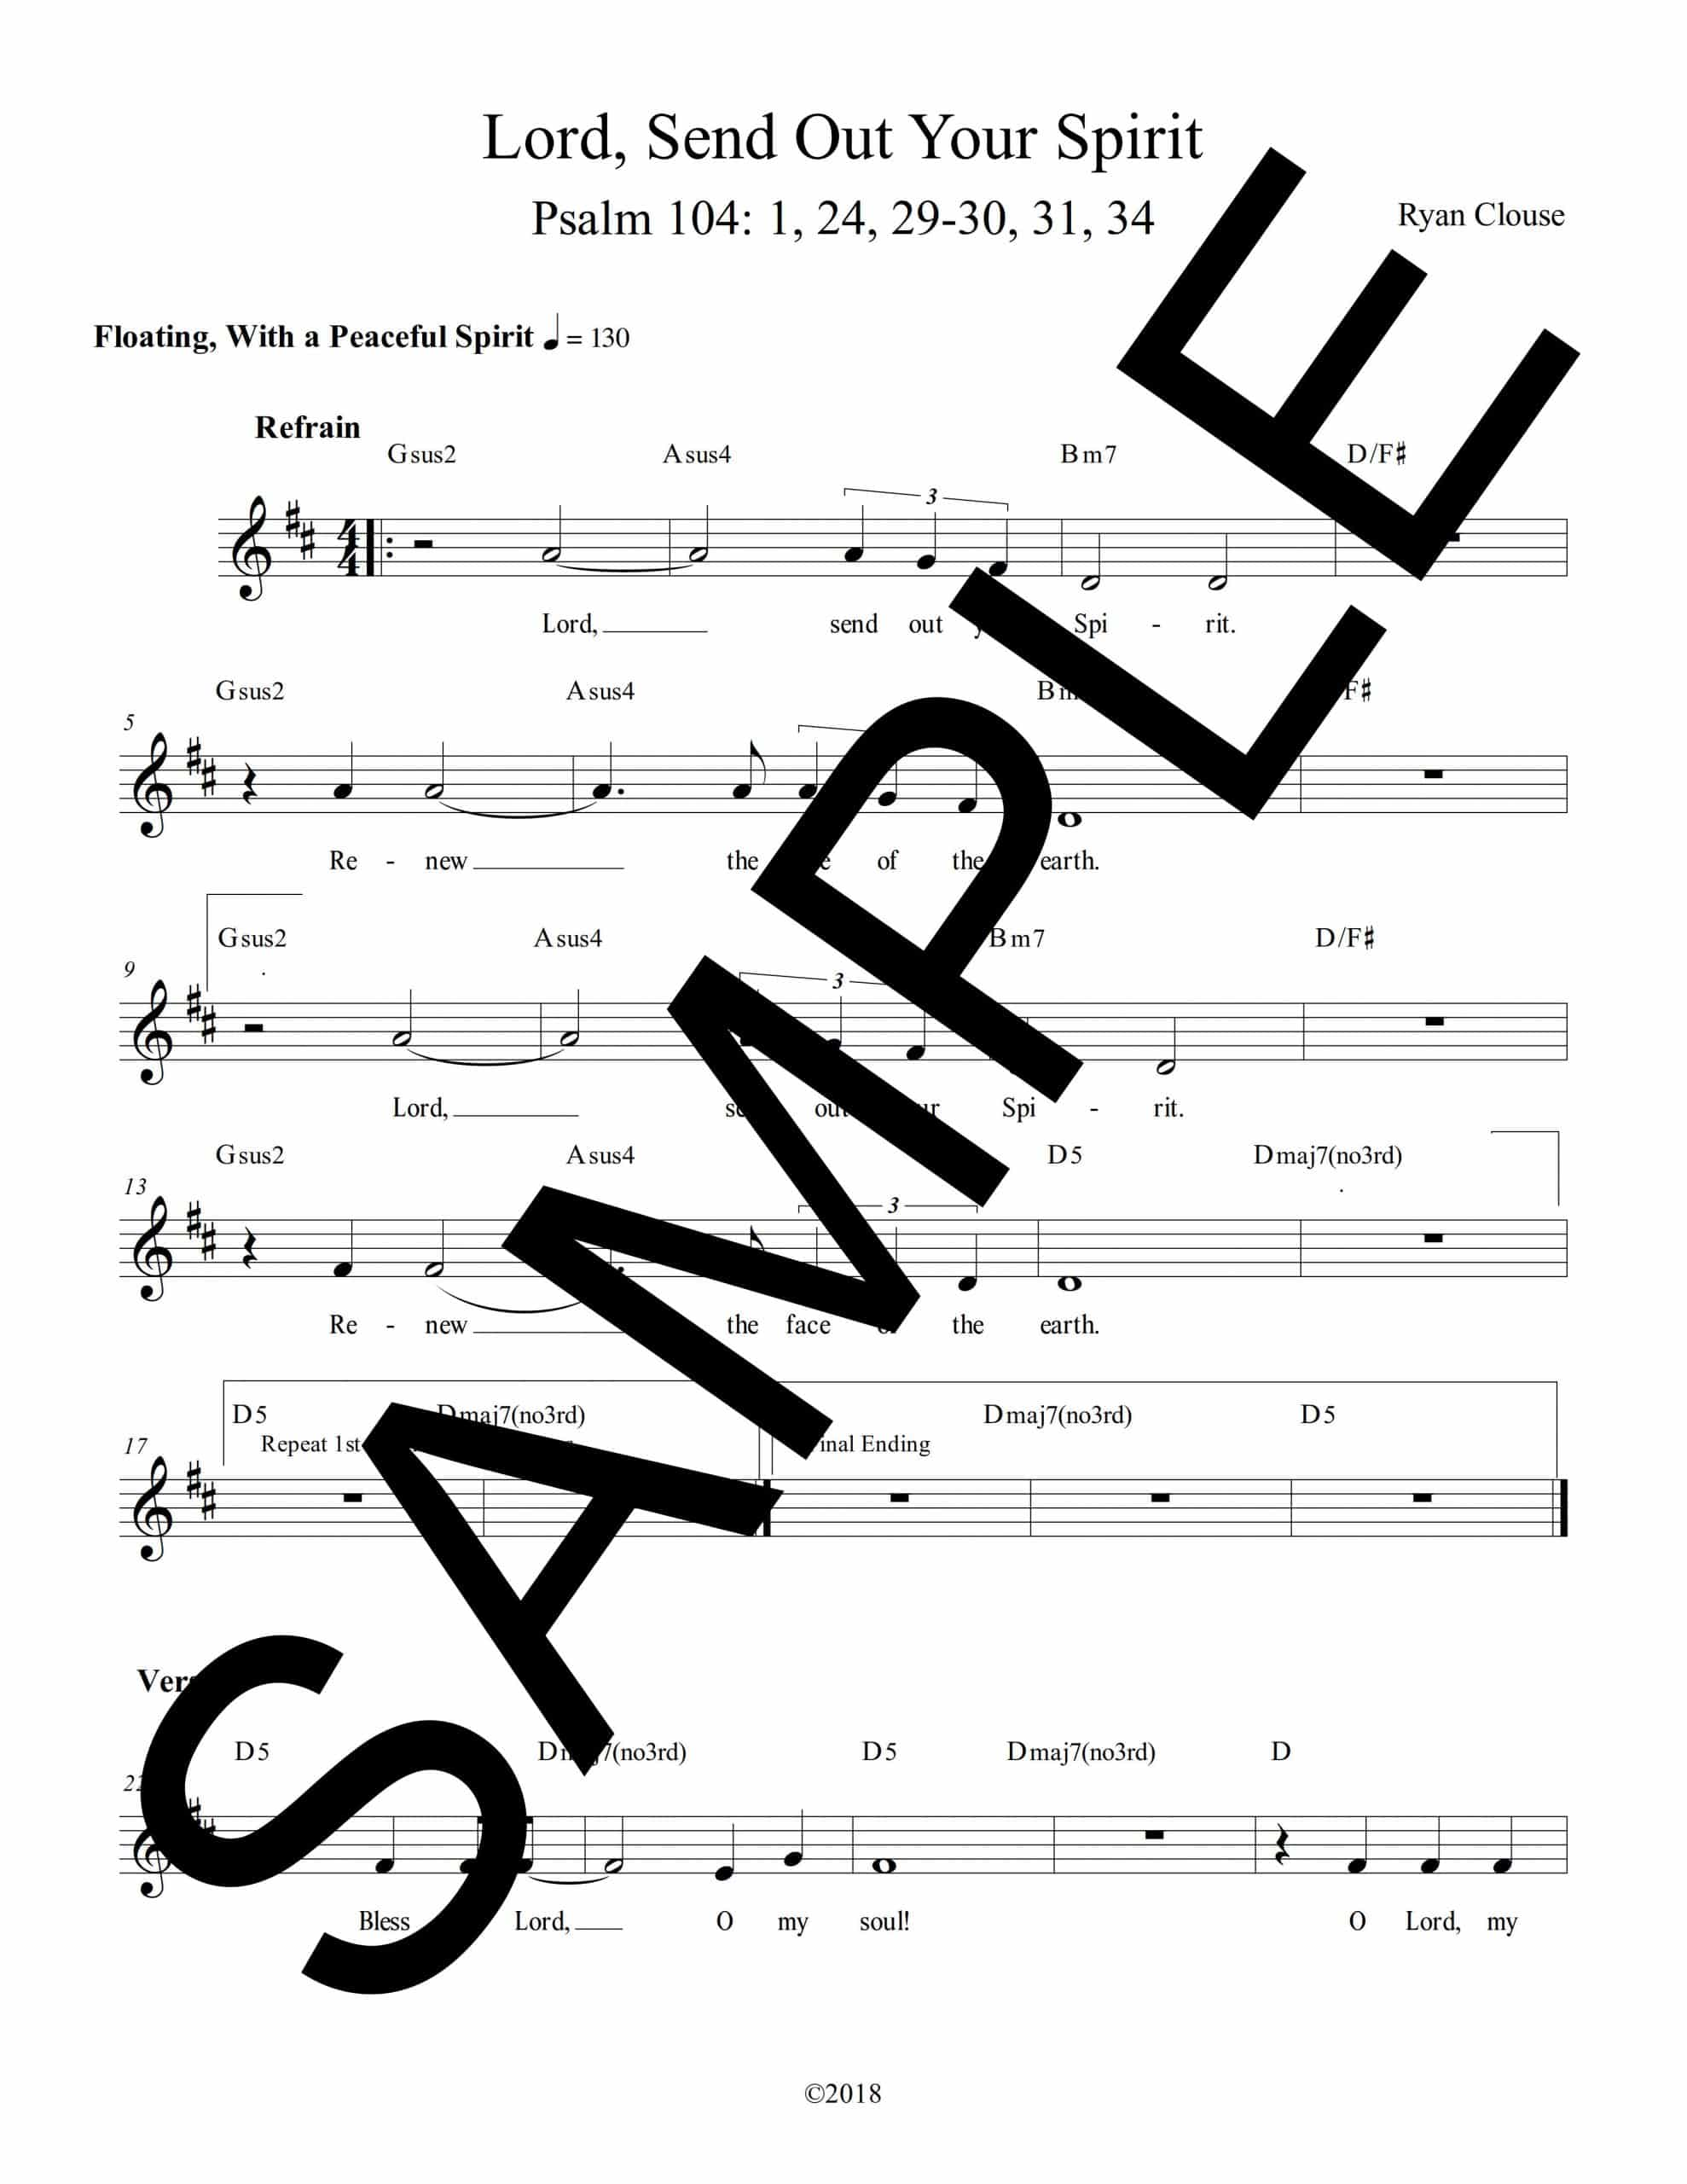 Psalm 104 Lord Send Out Your Spirit Clouse Sample Lead Sheet scaled